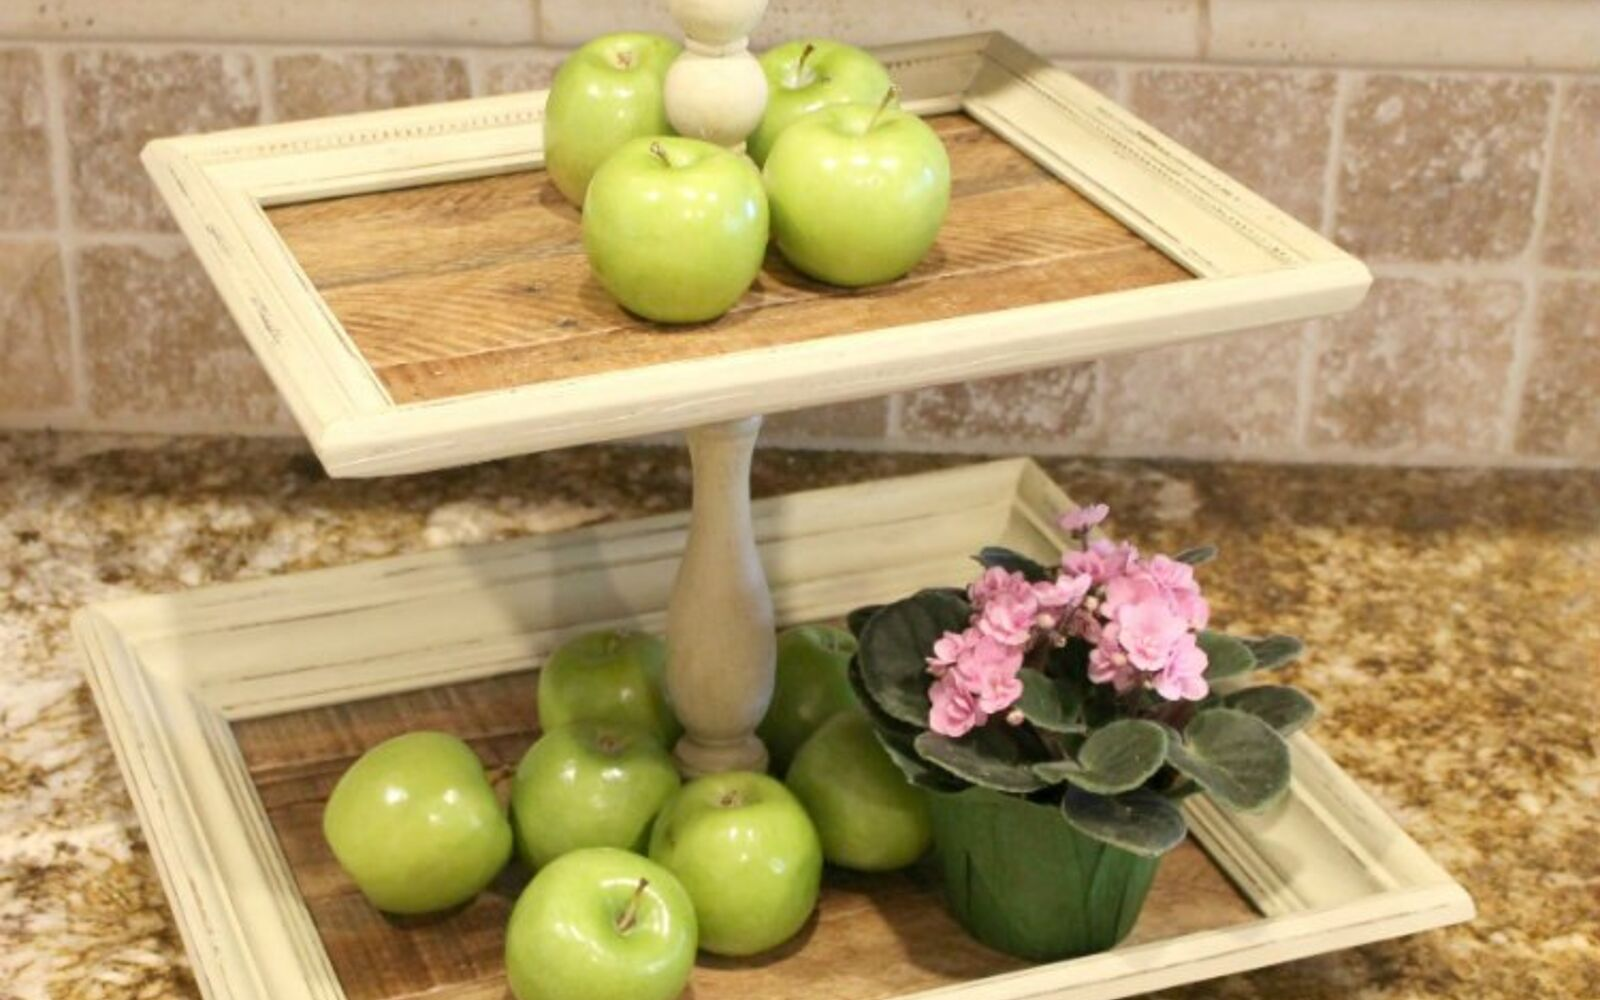 s 31 update ideas to make your kitchen look fabulous, Build a tiered tray countertop space saver